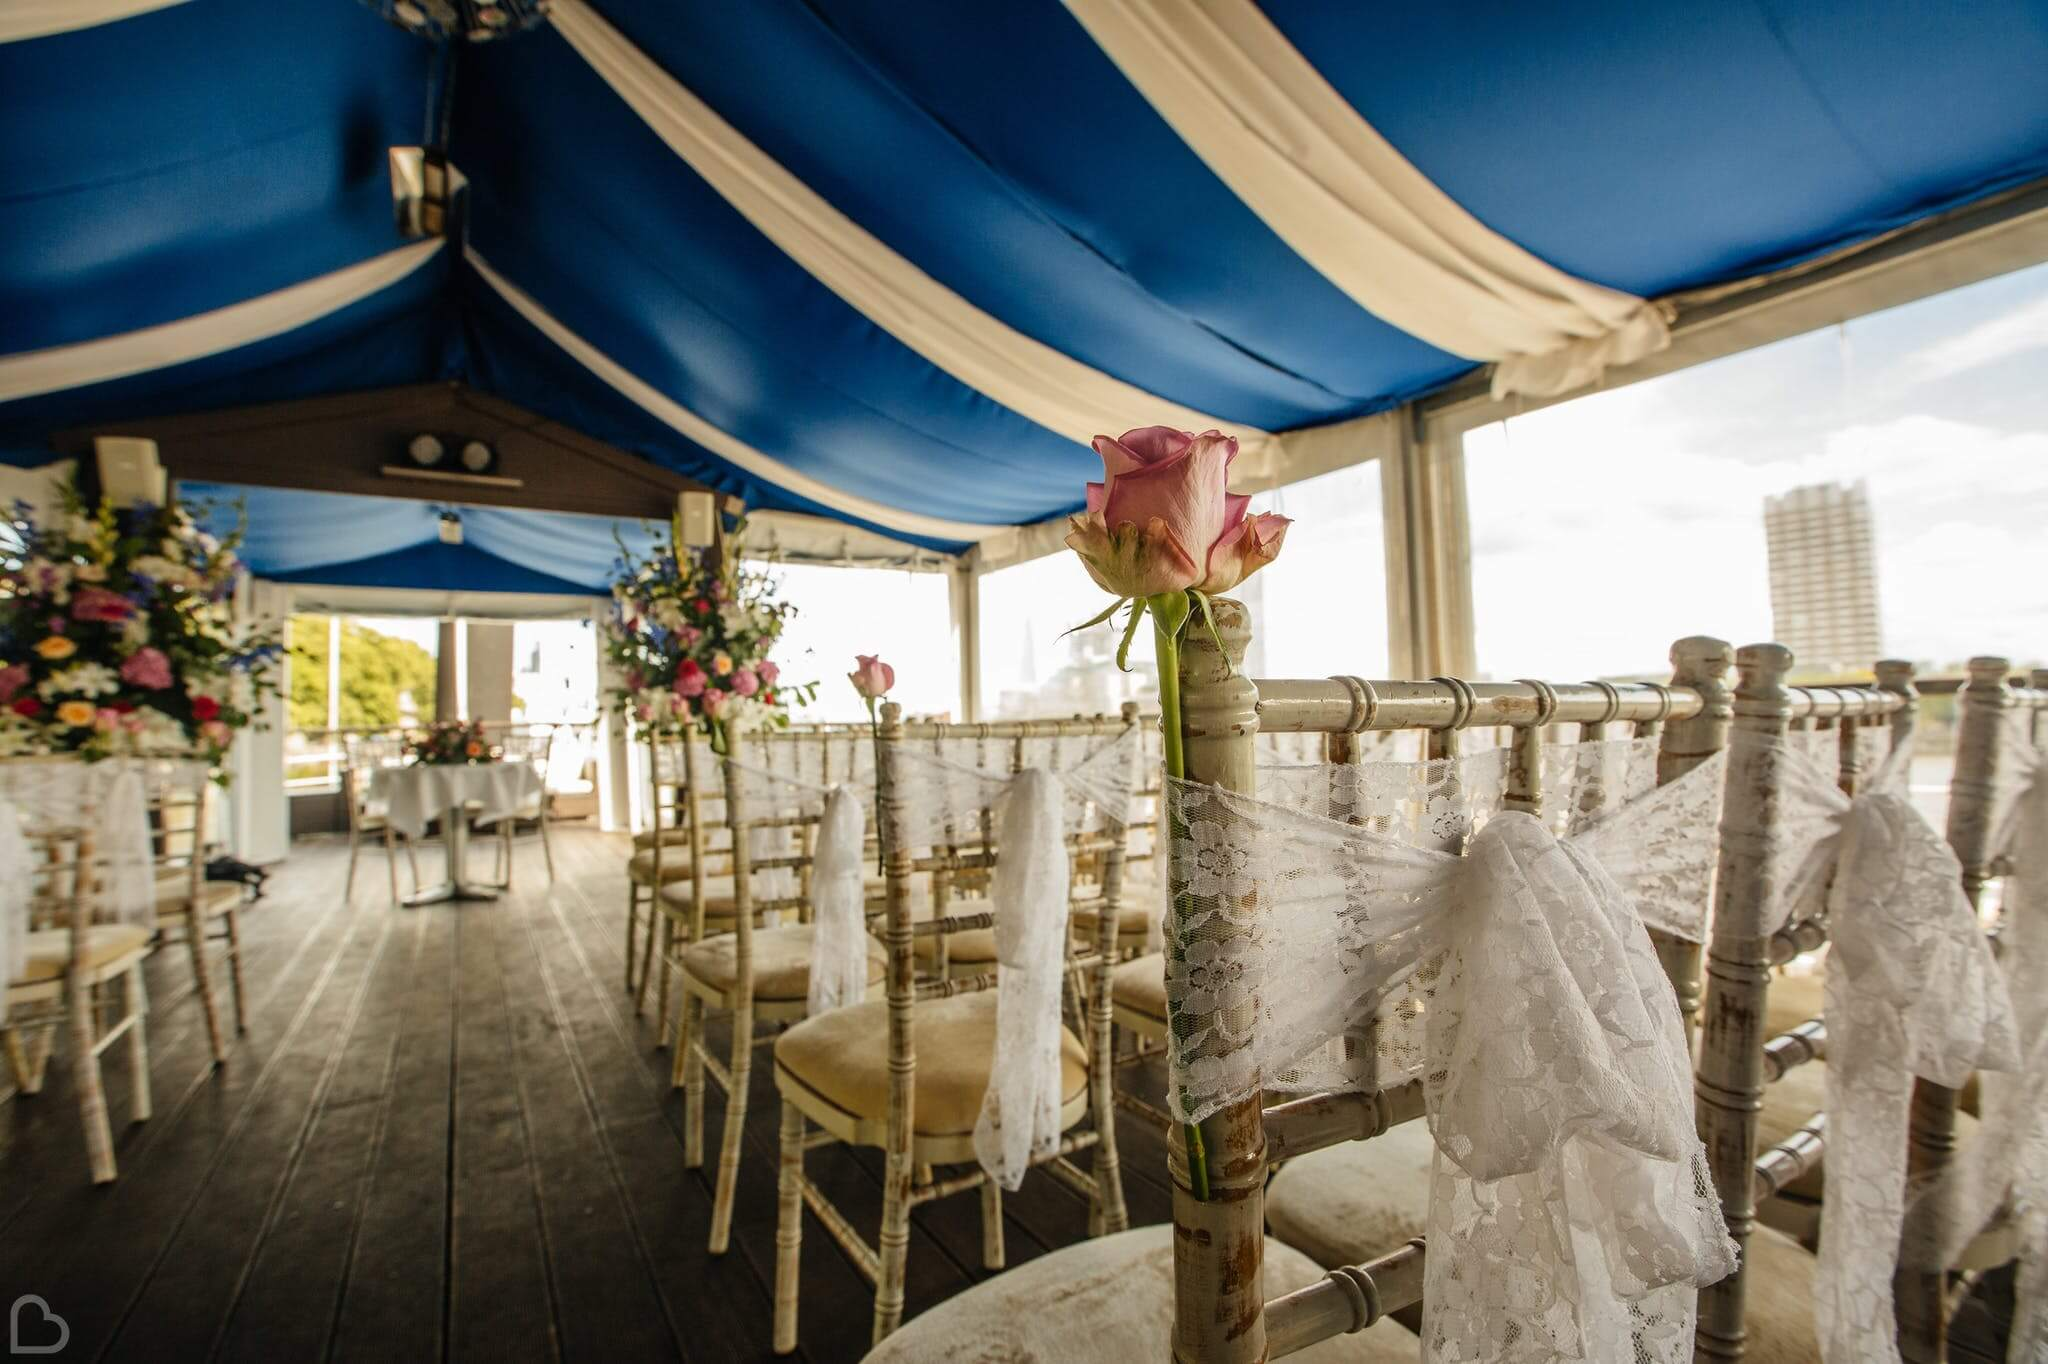 the yatch london chairs set up for a wedding ceremony with a rose and lace on each chair.